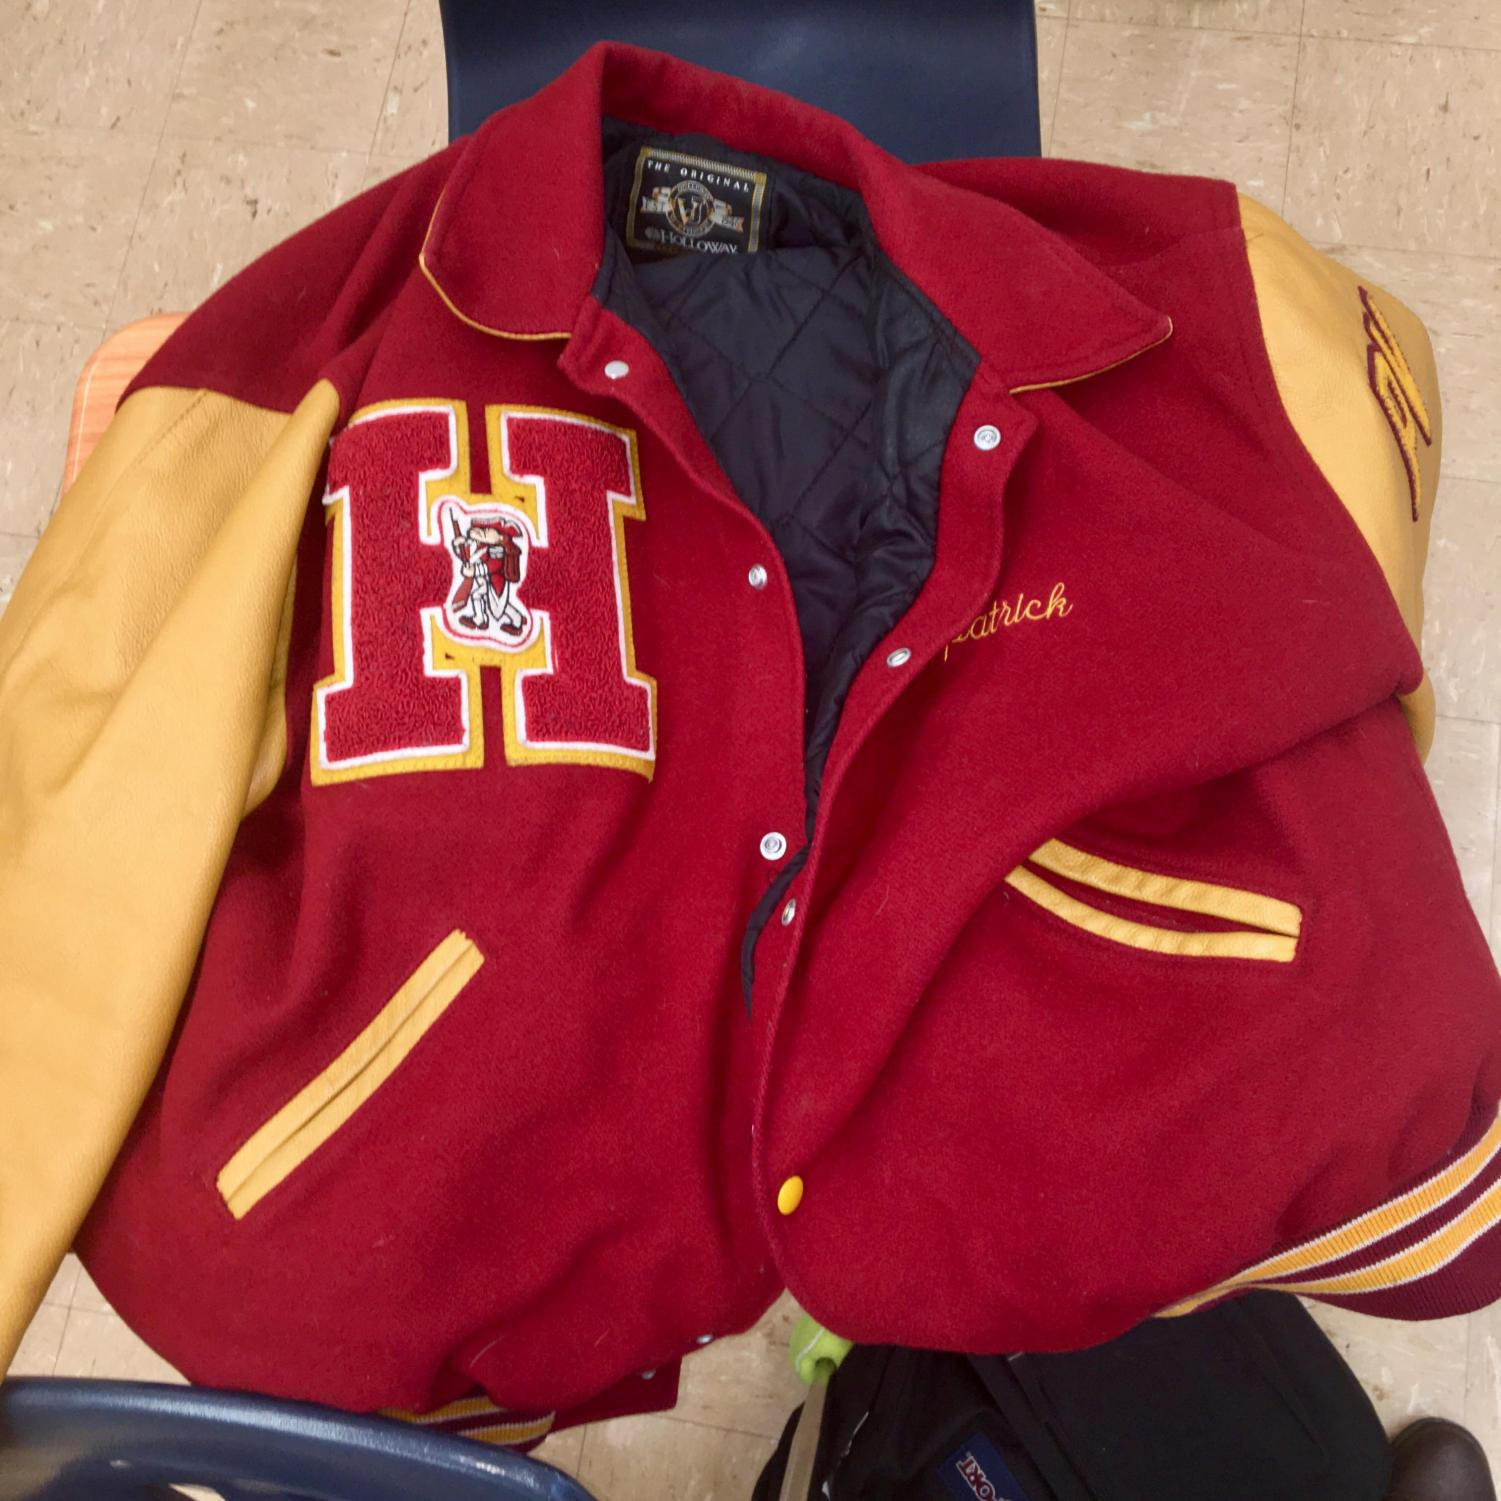 The much coveted varsity jacket that will remain out of reach for this year's dance team members.